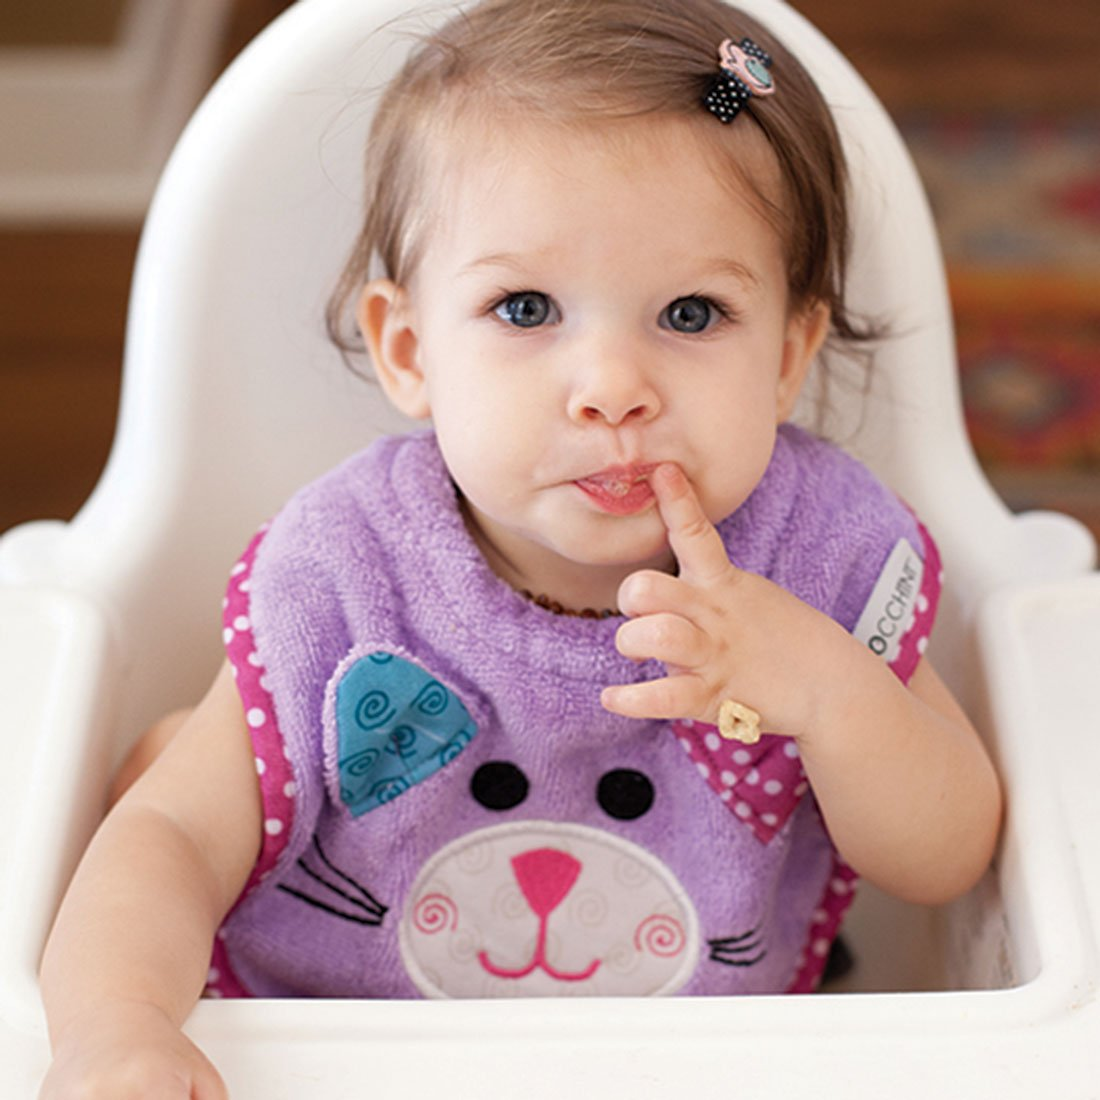 ZOOCCHINI Baby Snow Terry Feeding Bib - Kallie the Kitten